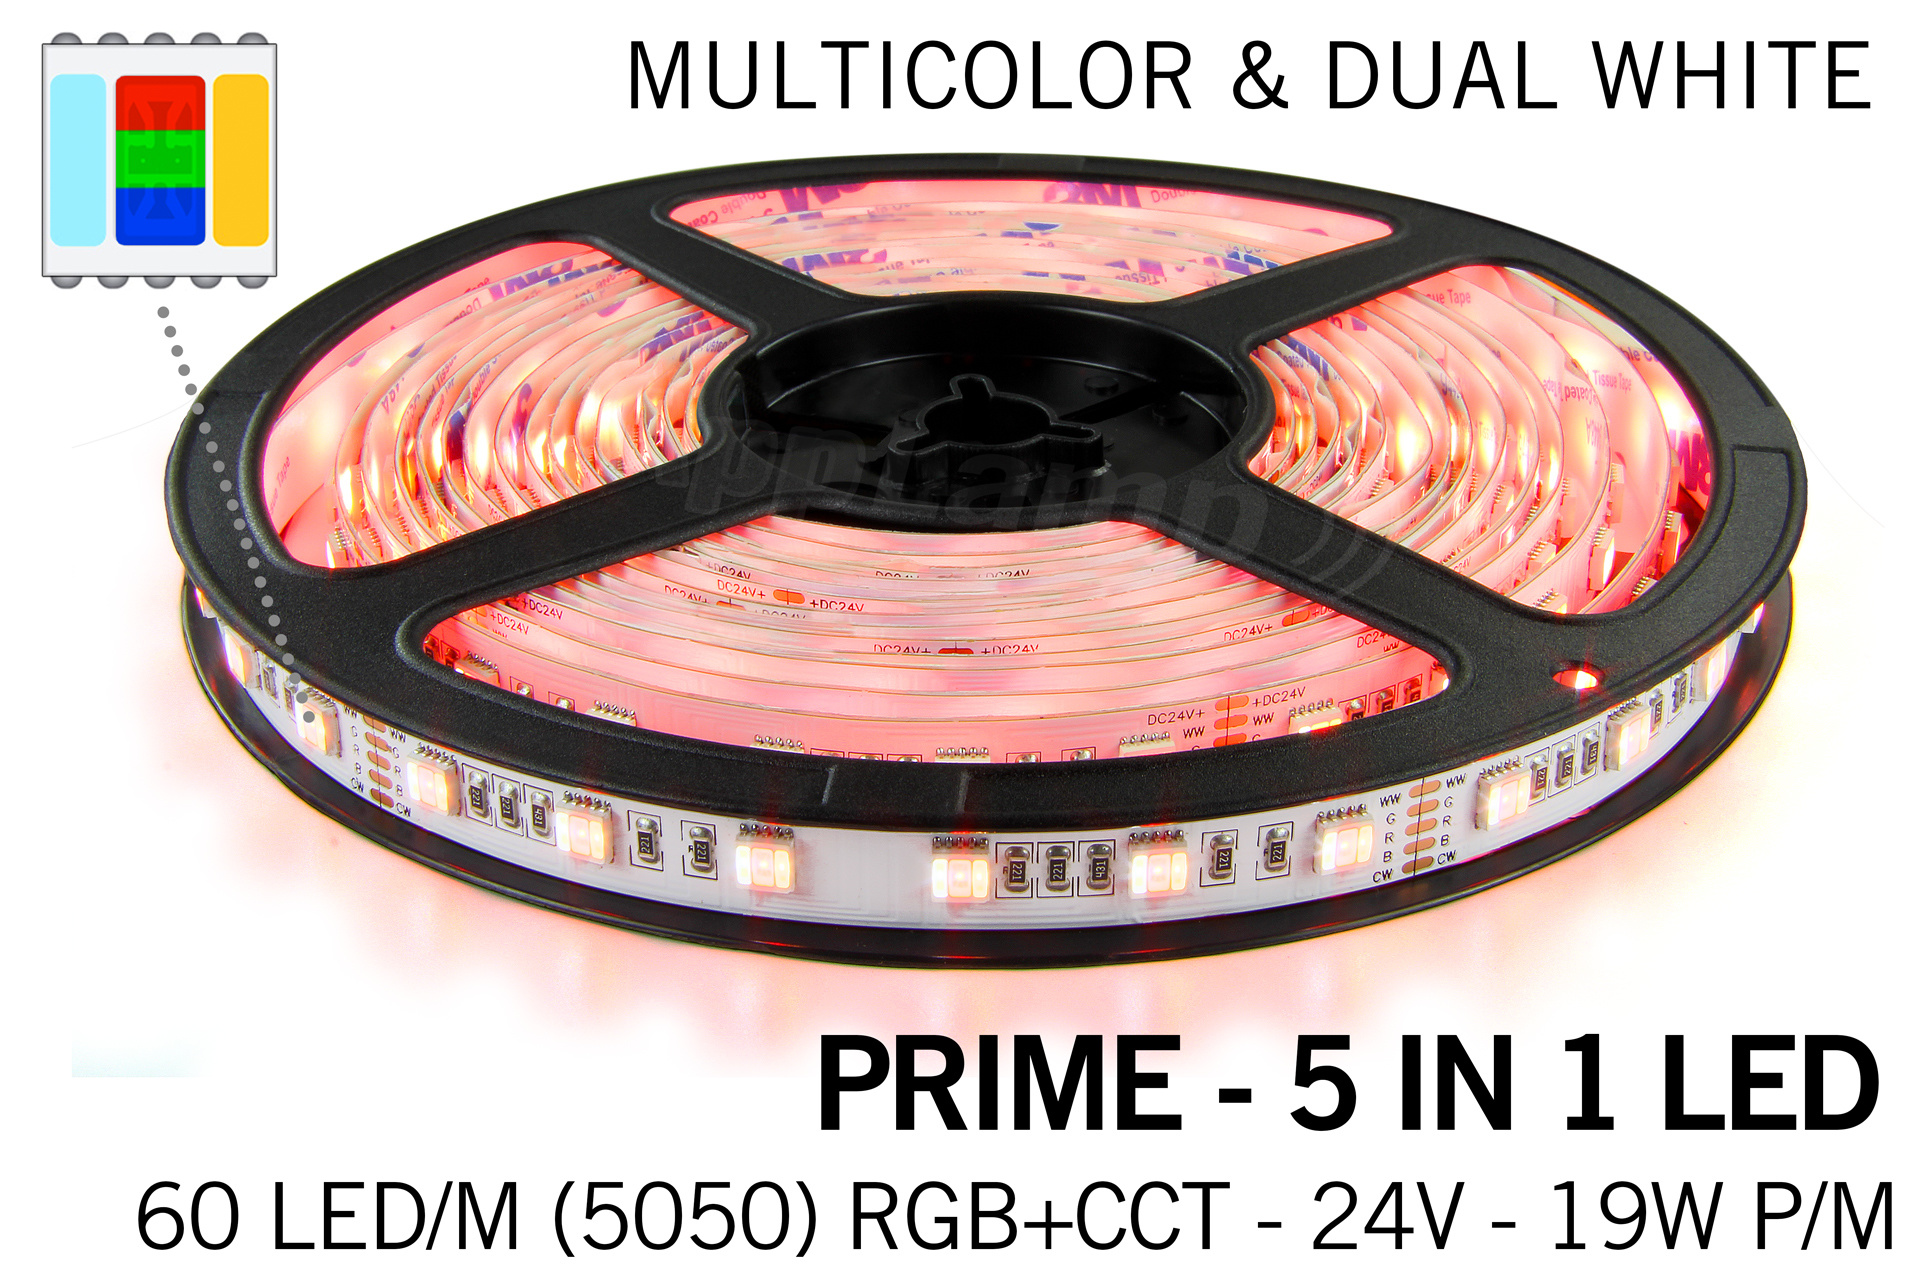 Mi·Light PRIME Ledstrip RGB Color+Dual White 60 LED/m, 5 IN 1. Complete set met RF Afstandsbediening